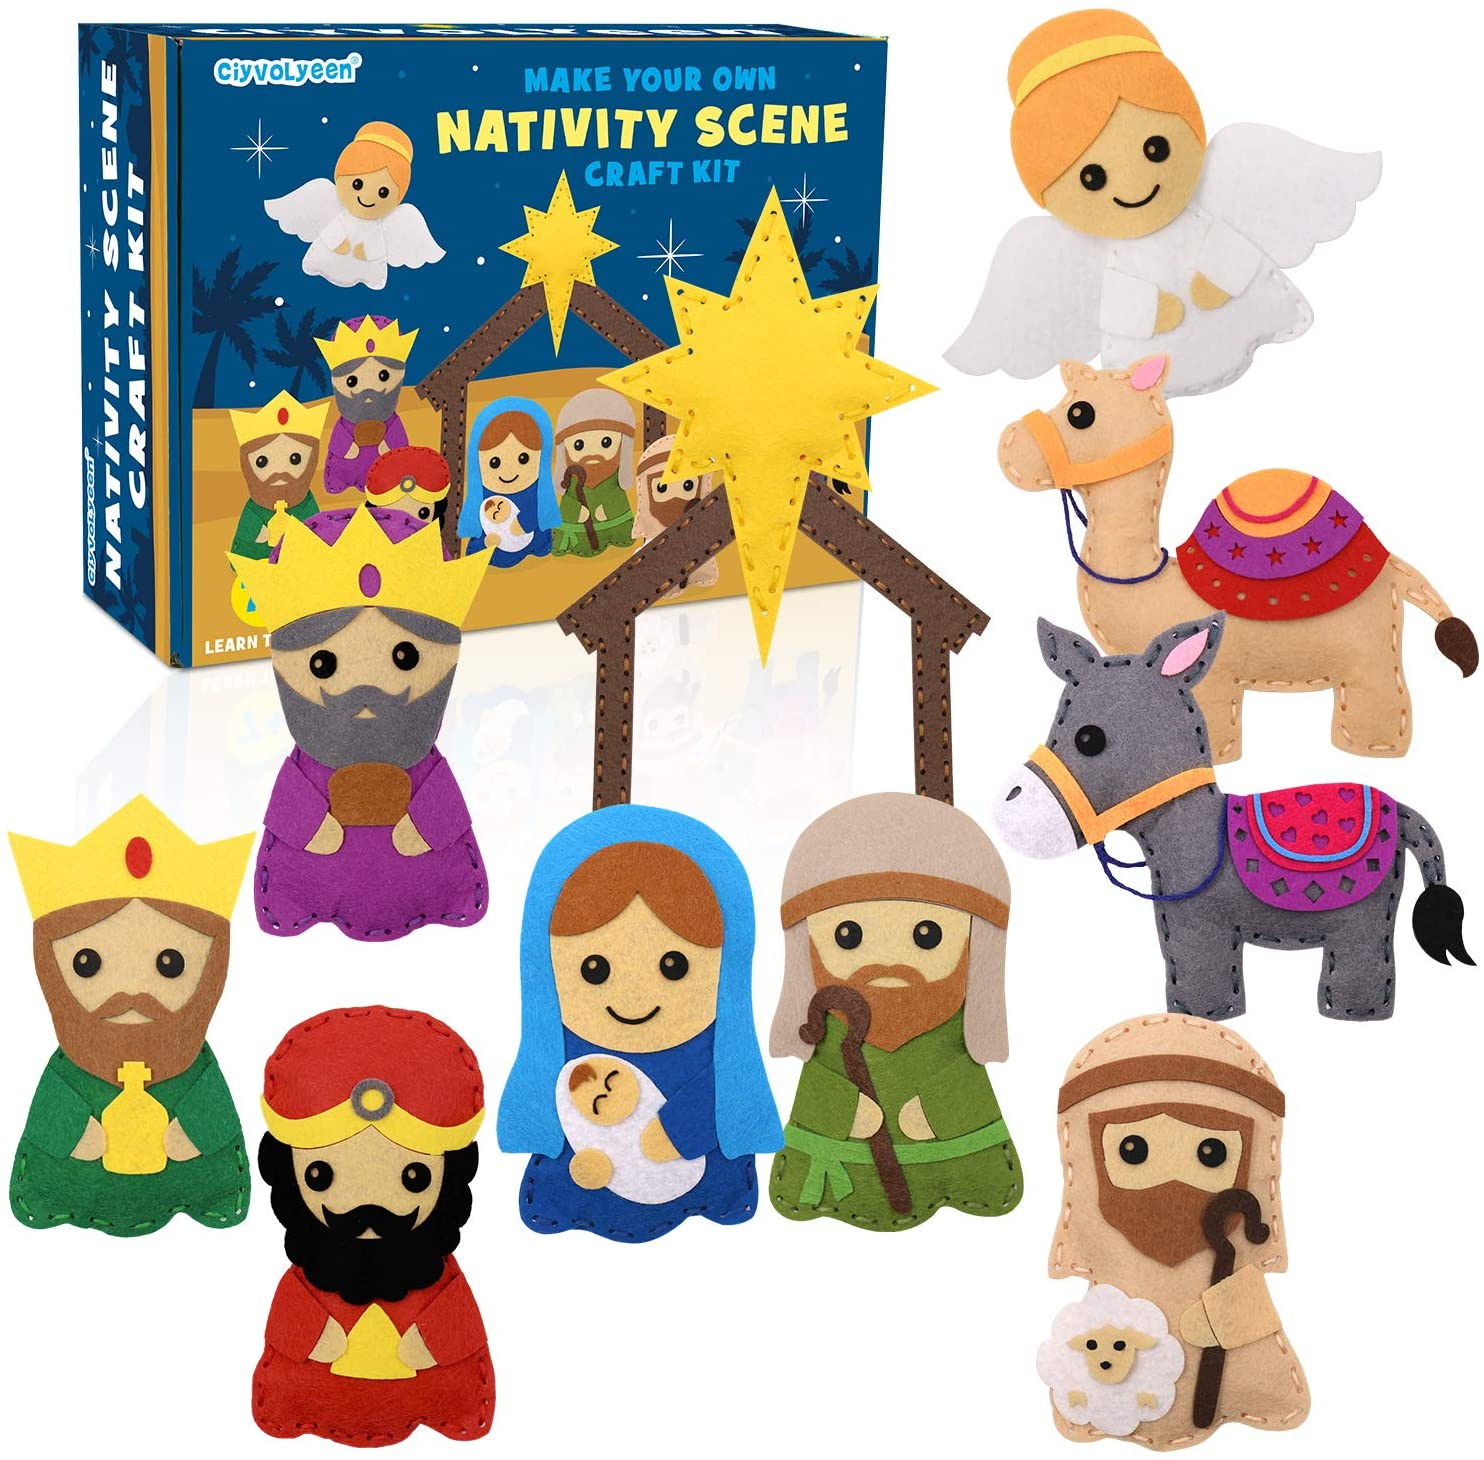 CiyvoLyeen Nativity Scene Craft Kit Christmas Ornaments DIY Kids Craft and Sew Kits for Girls and Boys Educational Beginners Sewing Set